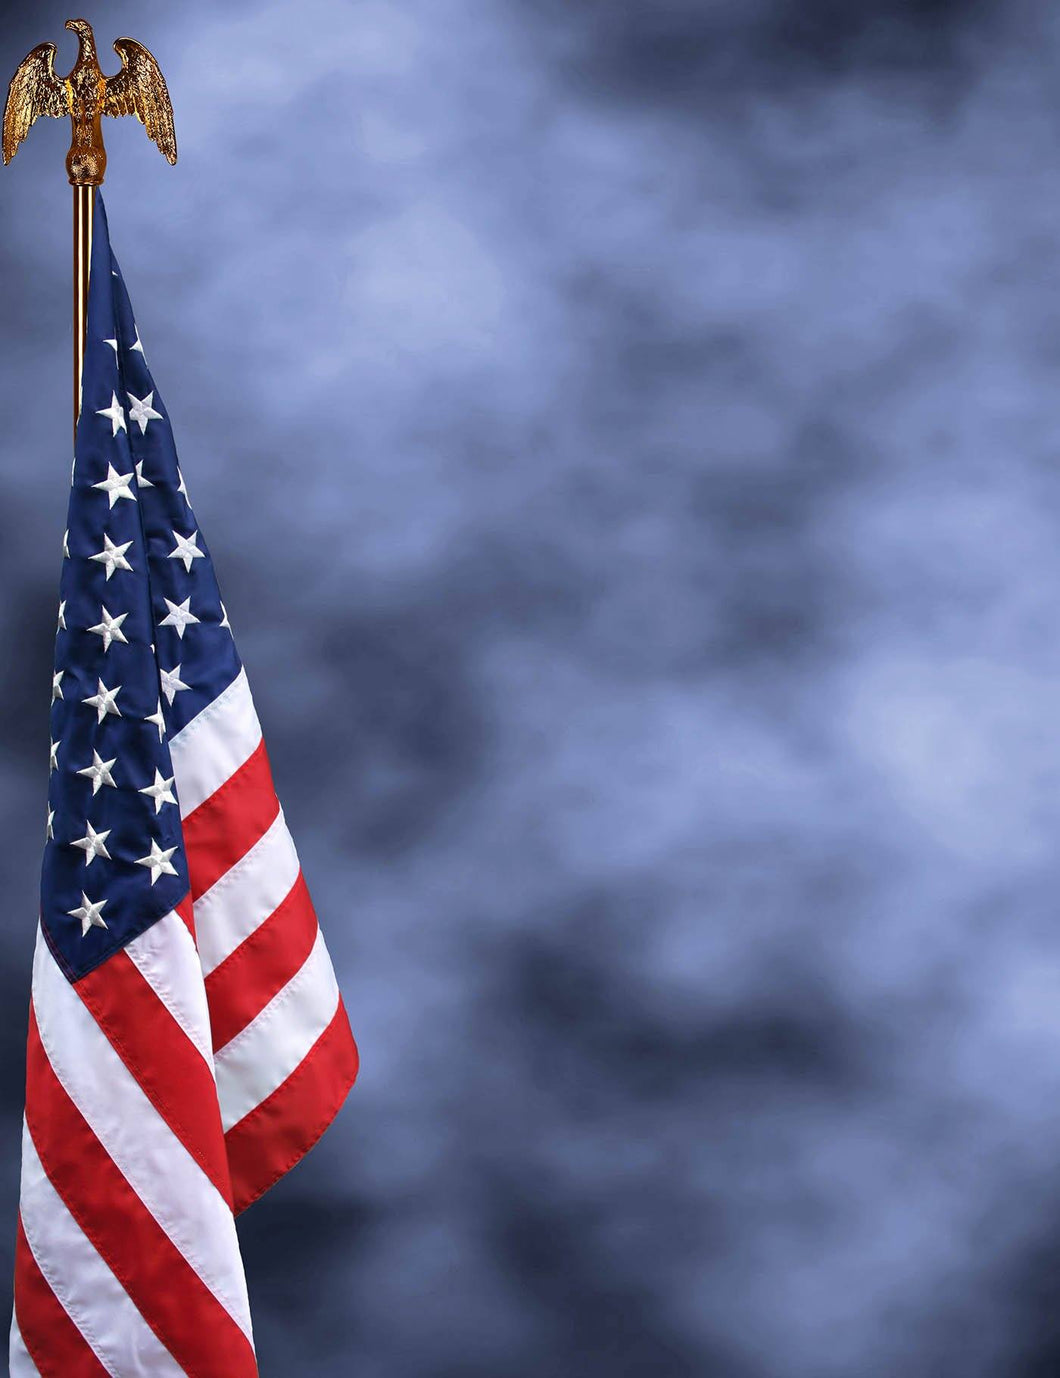 abstract gray purple with american flag photography backdrop j 0620